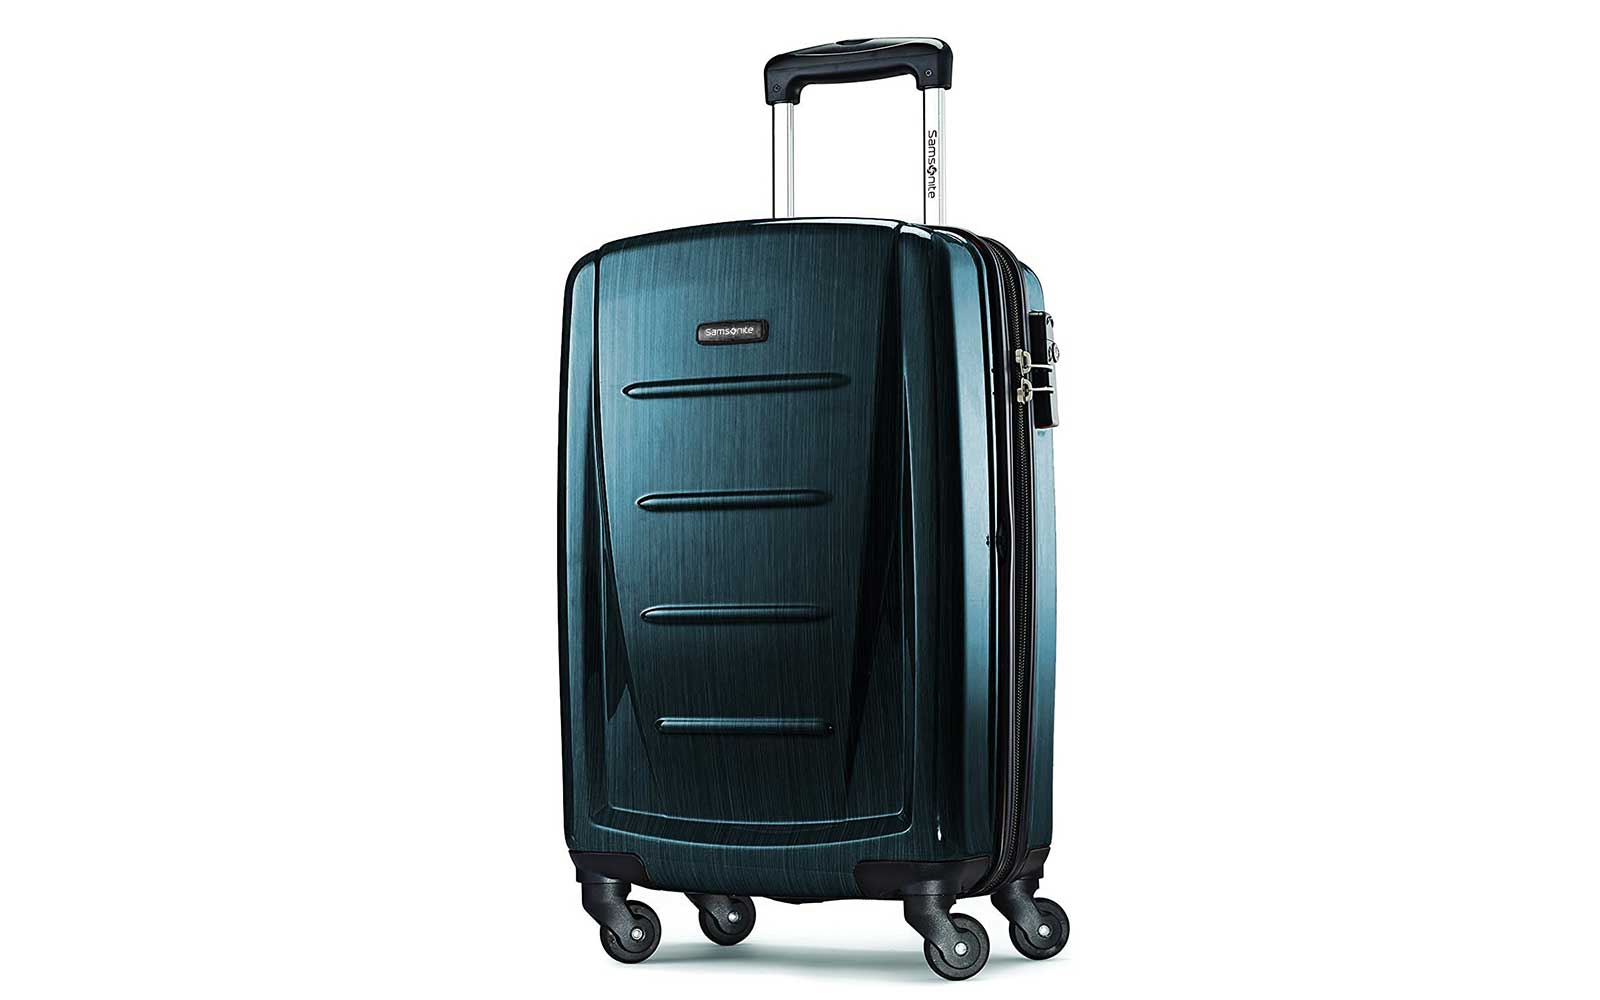 Samsonite Teal Suitcase